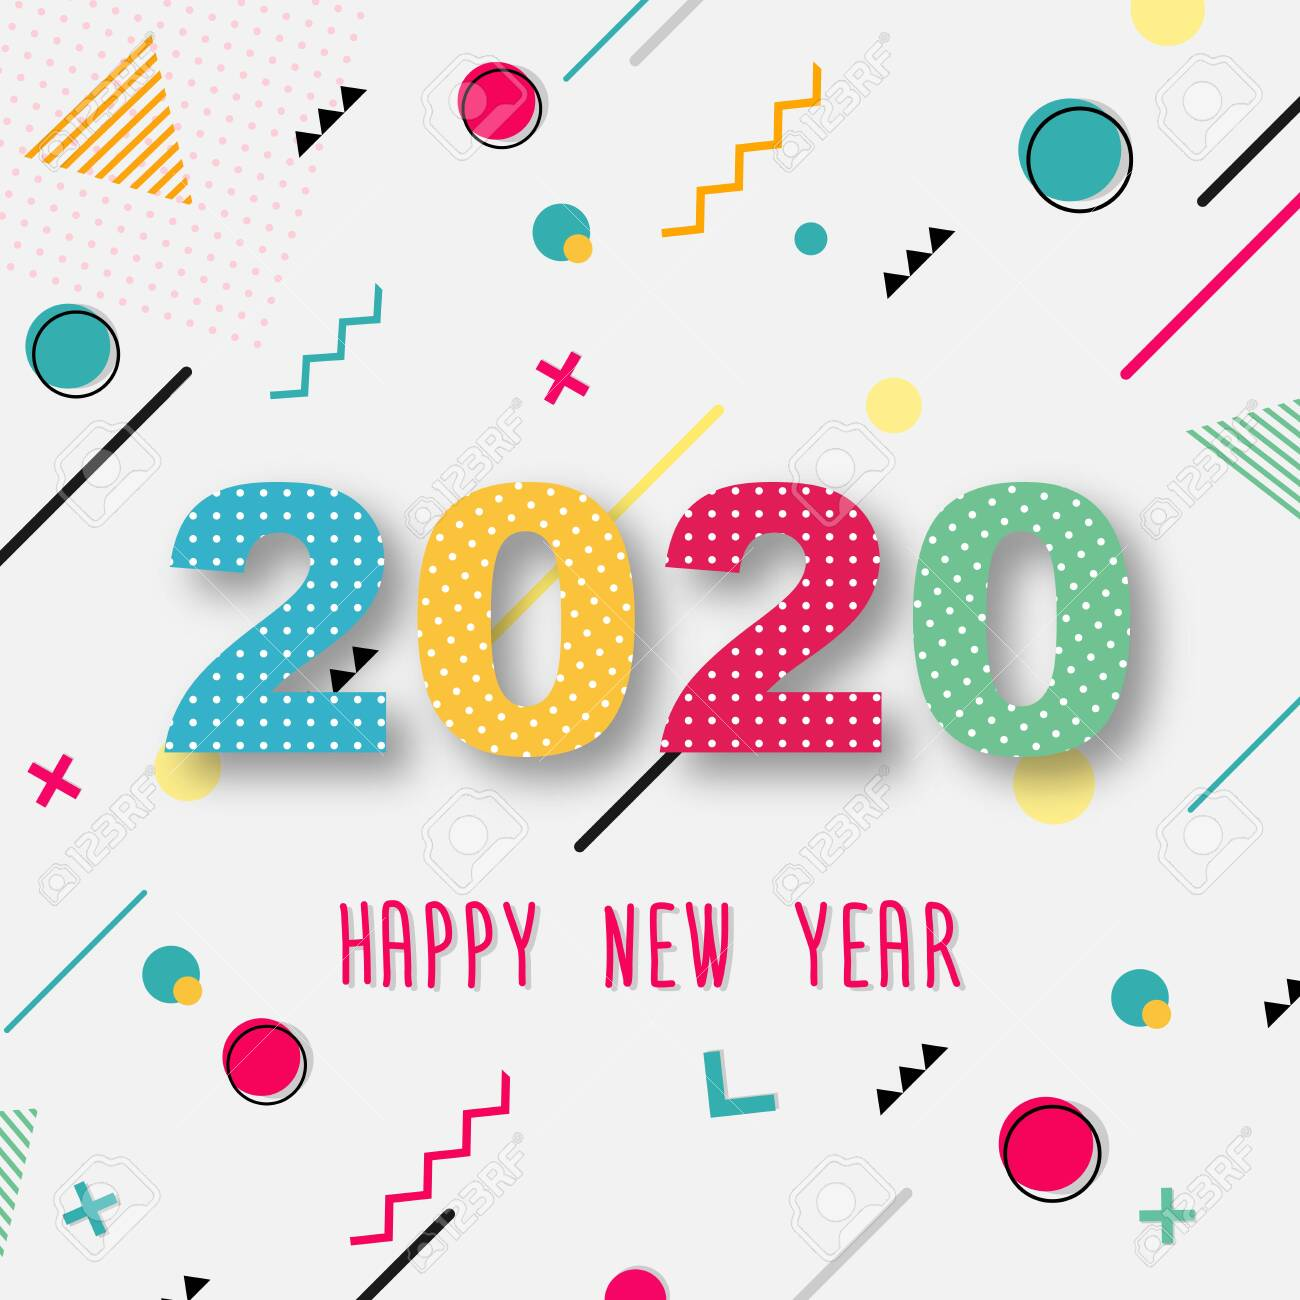 creative design of a new year card of 2020 on a modern background royalty free cliparts vectors and stock illustration image 128616285 creative design of a new year card of 2020 on a modern background